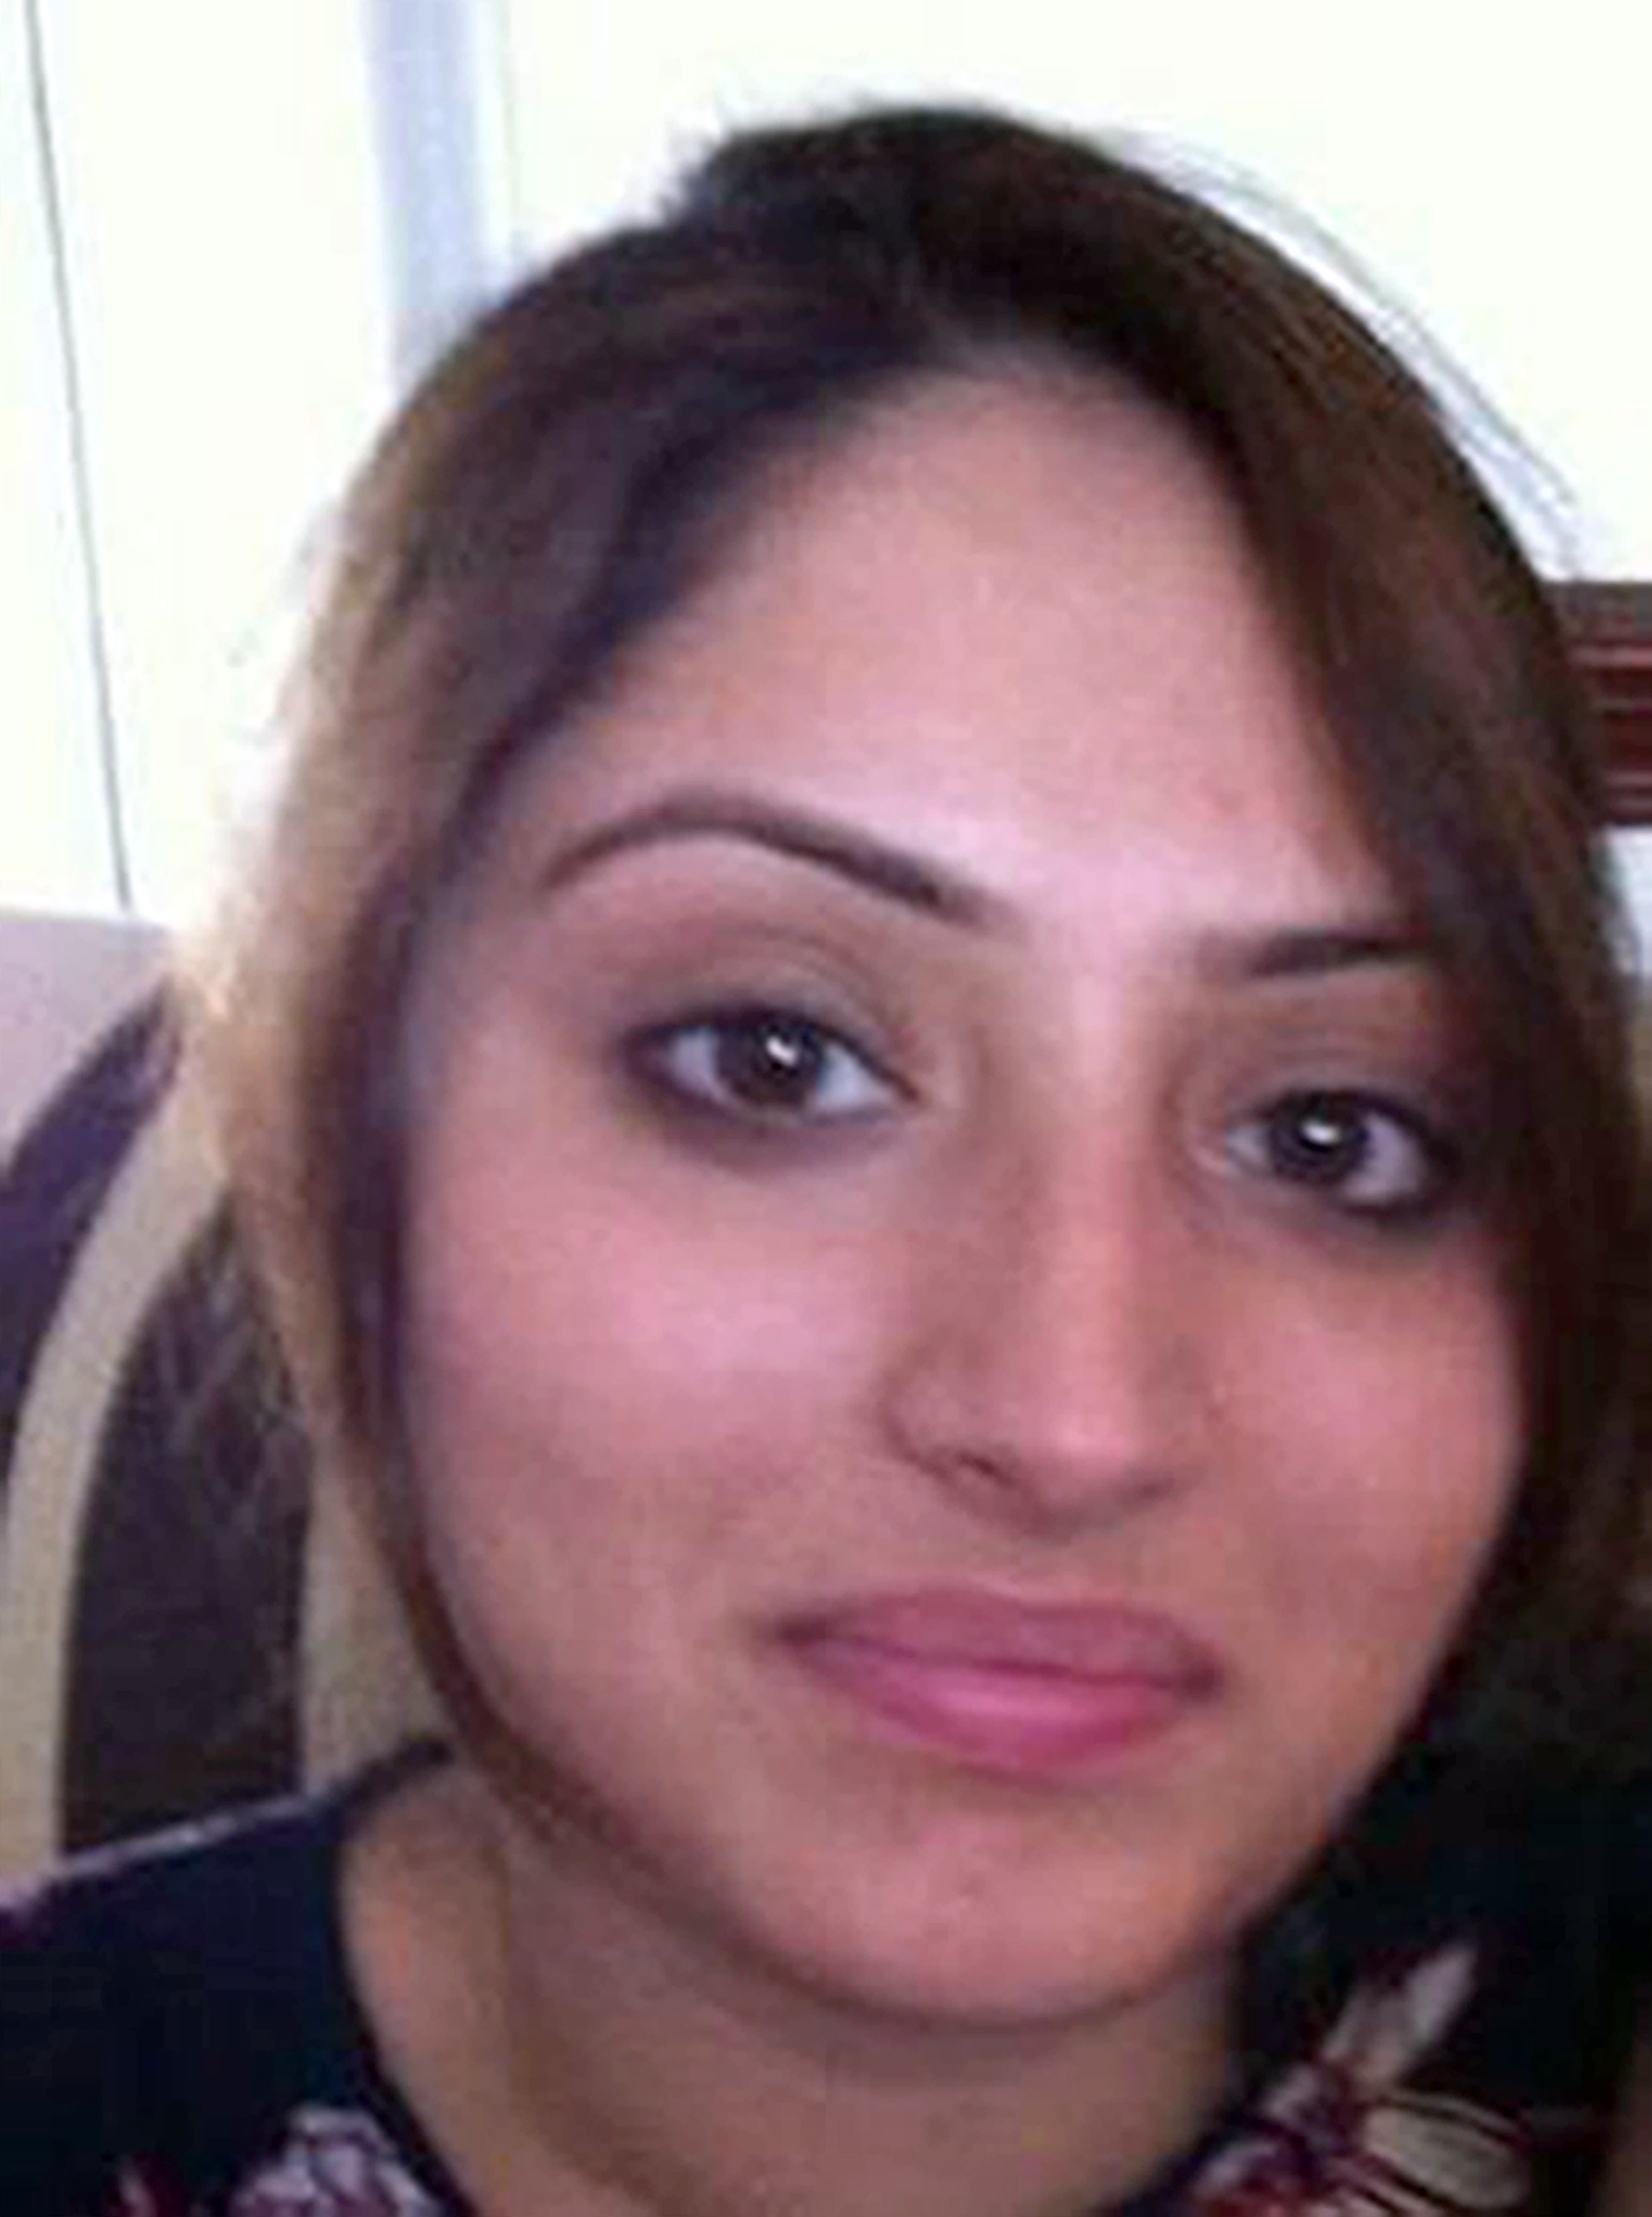 Asian Coventry dating thailandsk kvinne navn